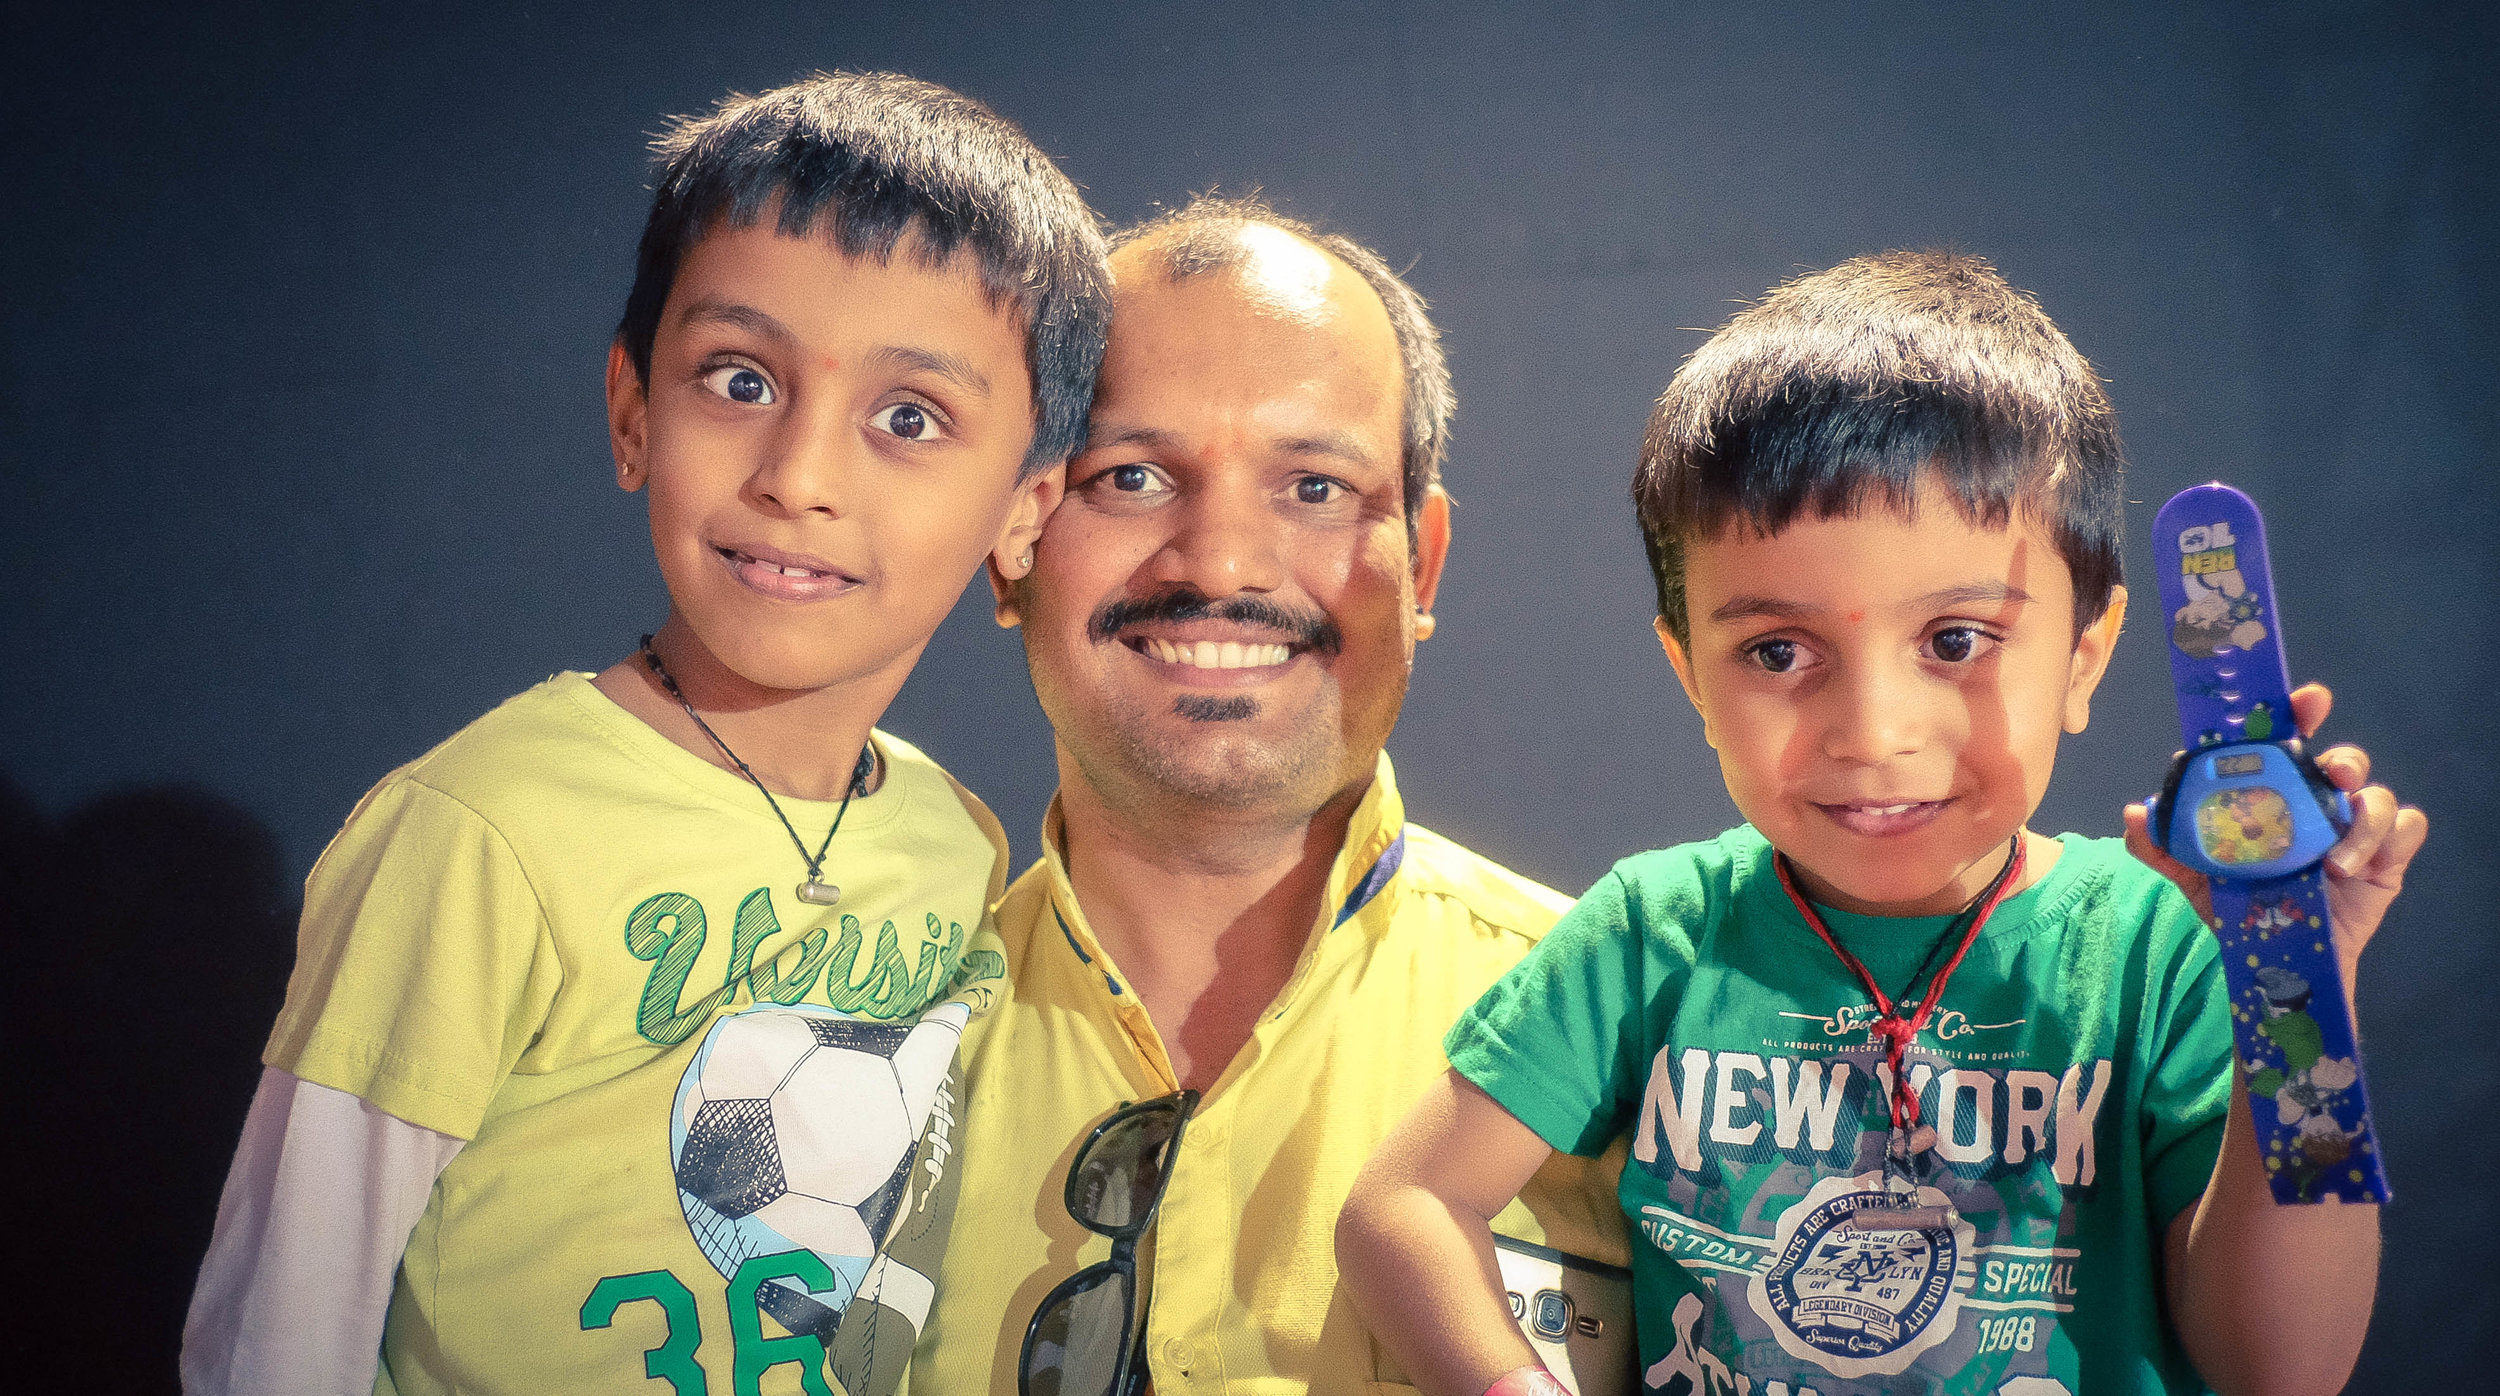 Mr. Raghavendra Kamat and his sons at our concert yesterday